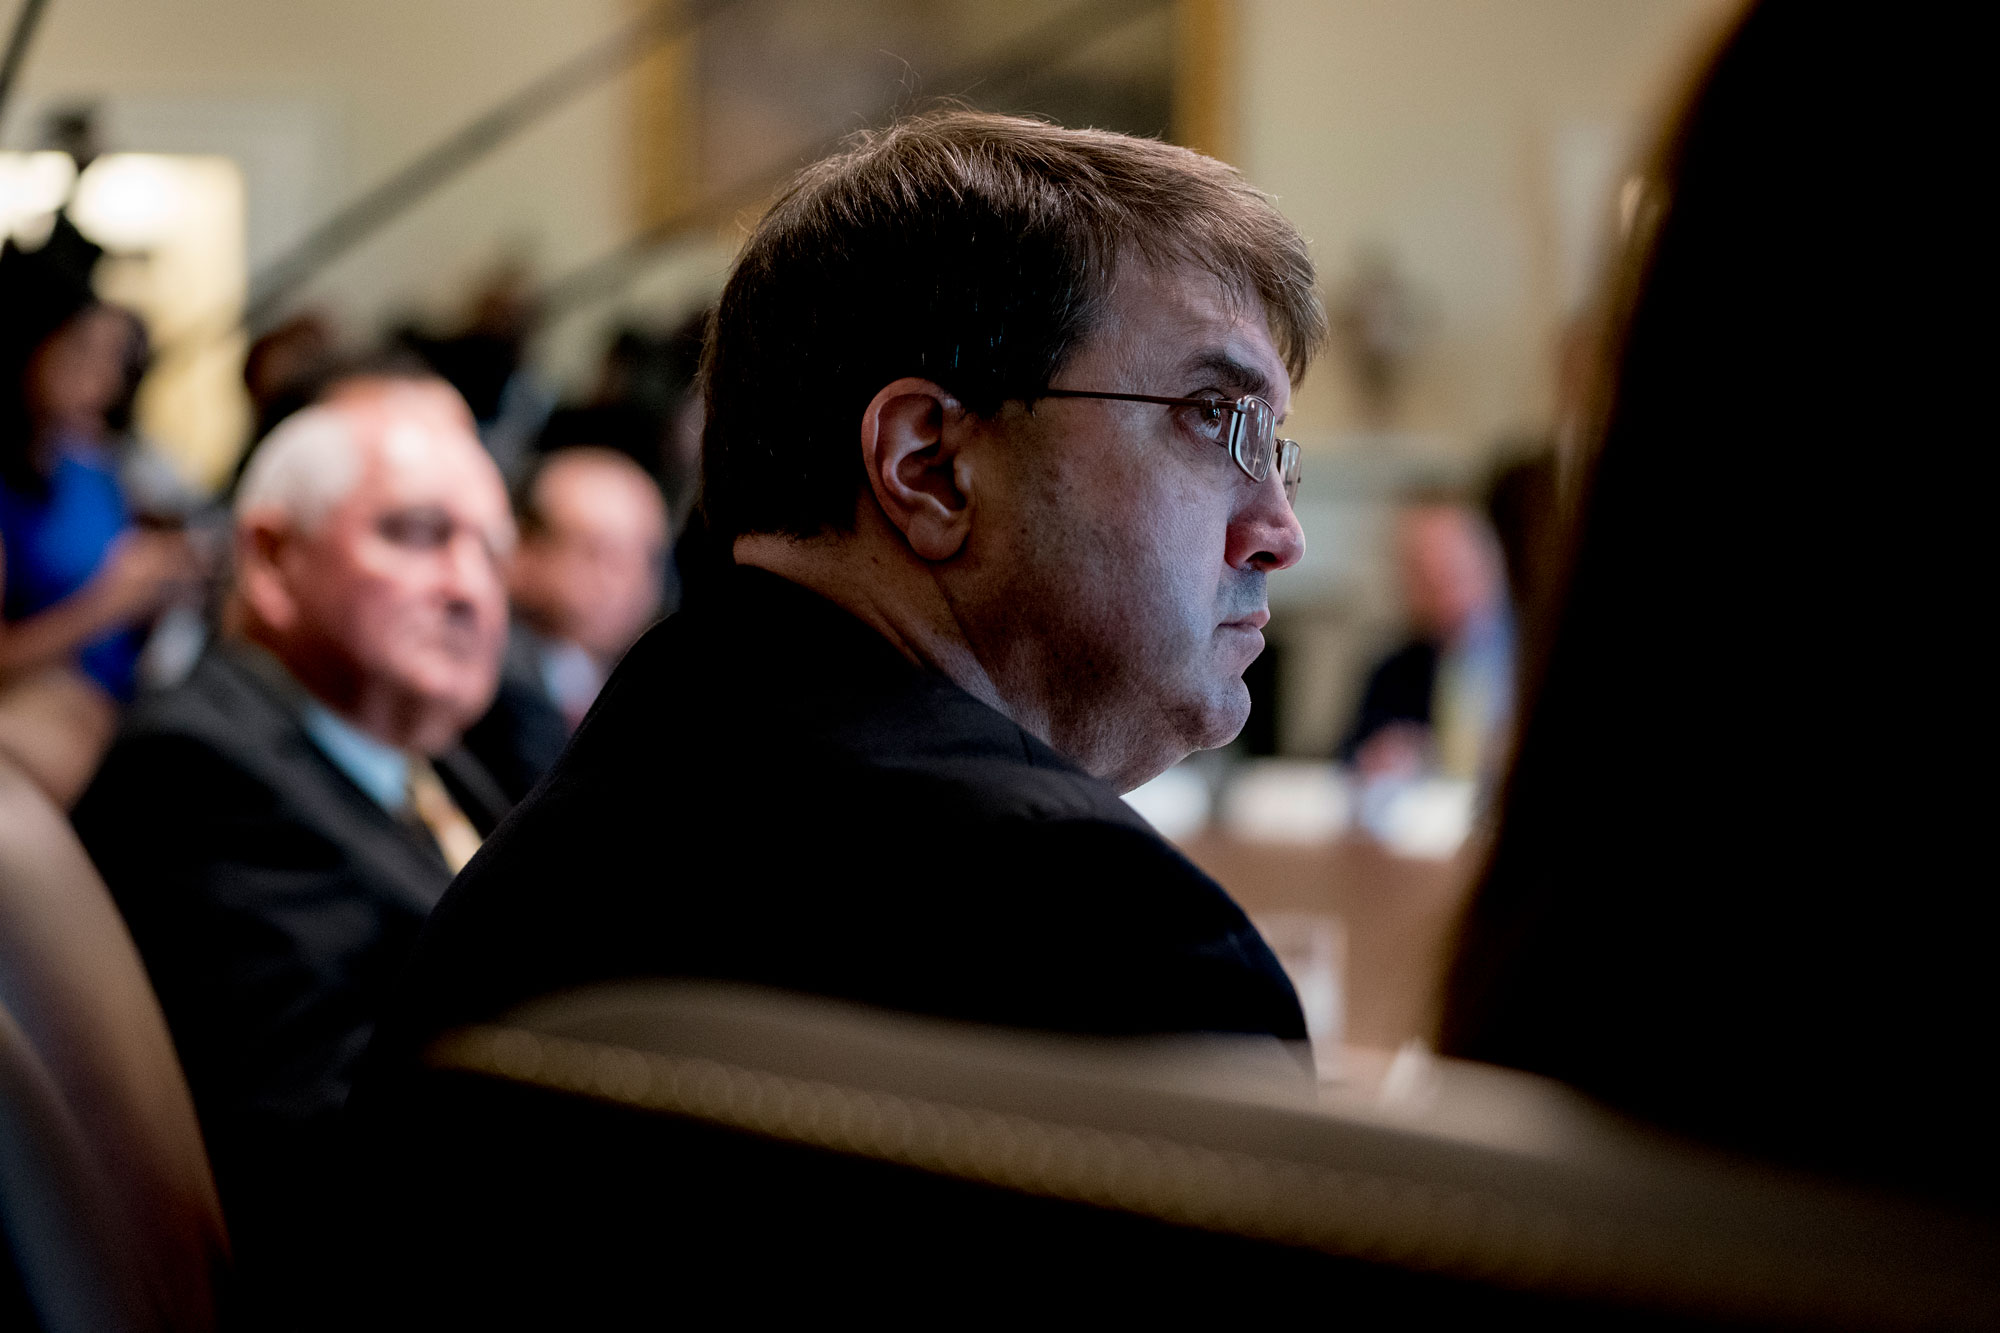 Photo: VA Secretary Robert Wilkie